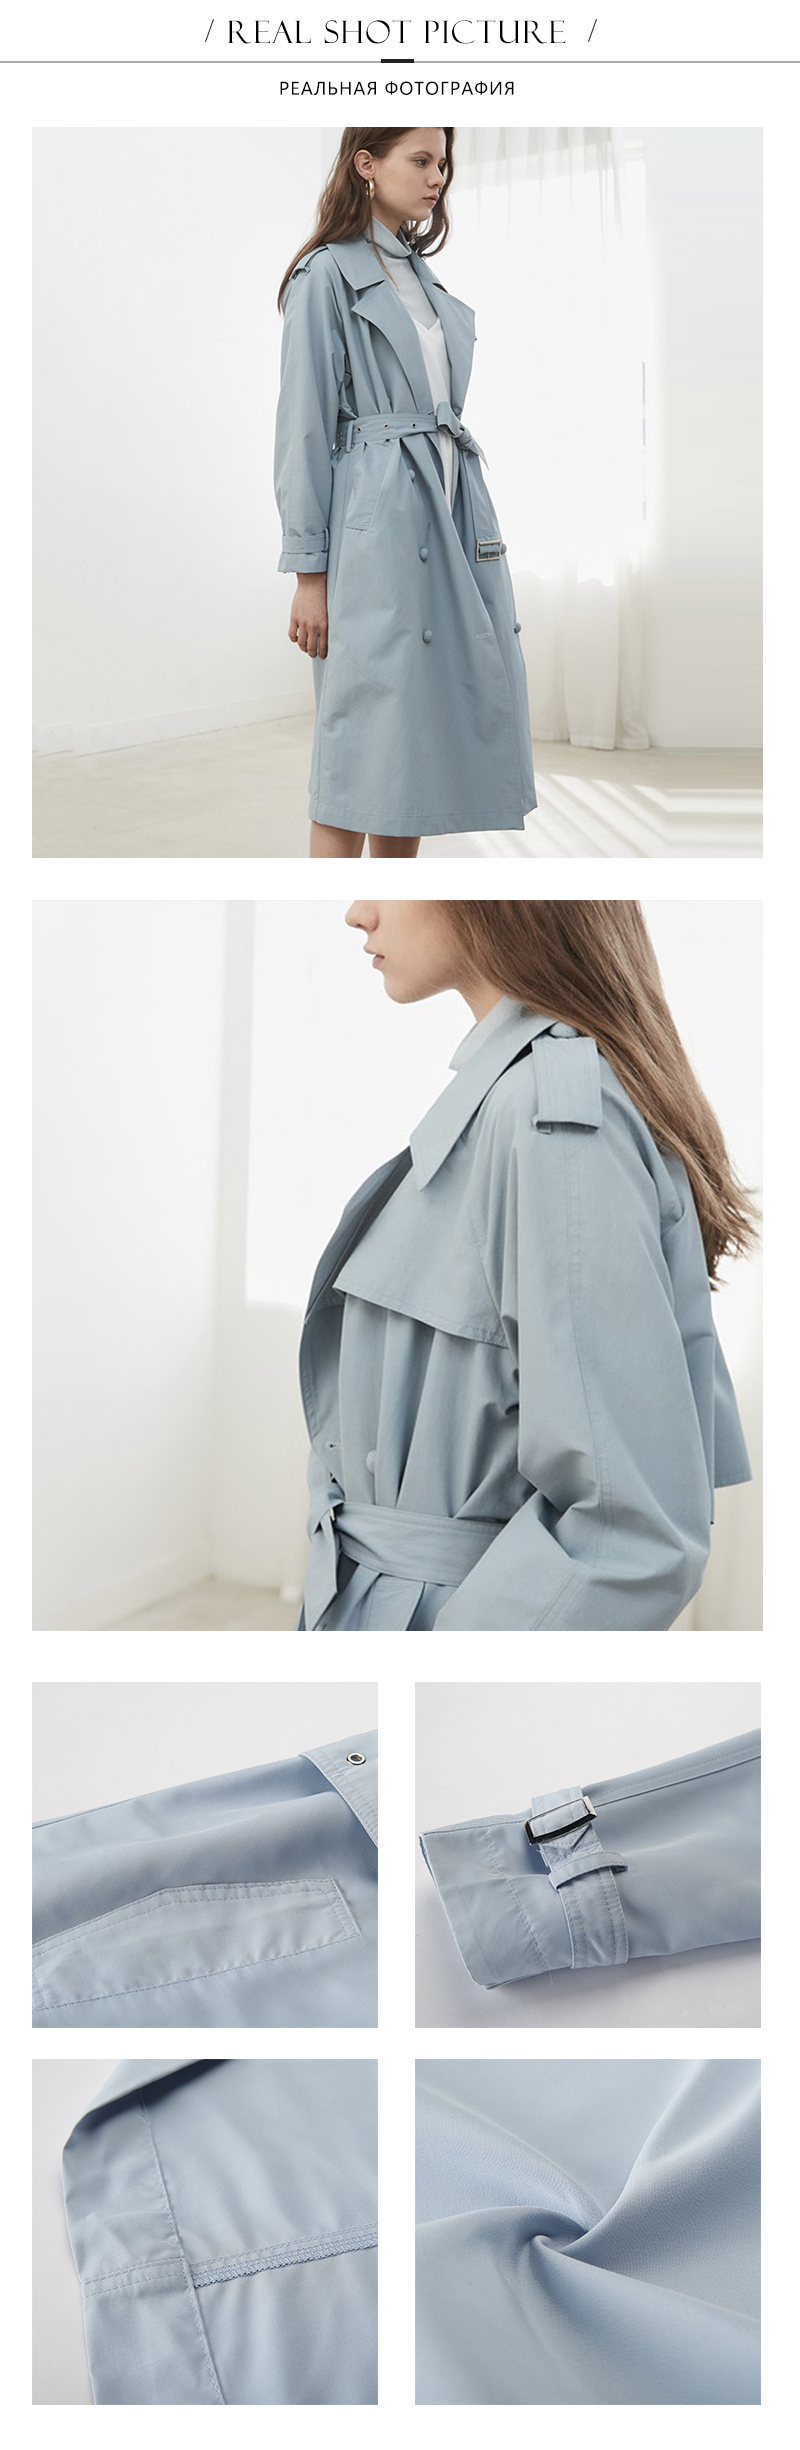 HDY Haoduoyi Women Casual Solid Color Double Breasted Outwear Sashes Office Coat Chic Epaulet Design Long Trench Coat Autumn 9